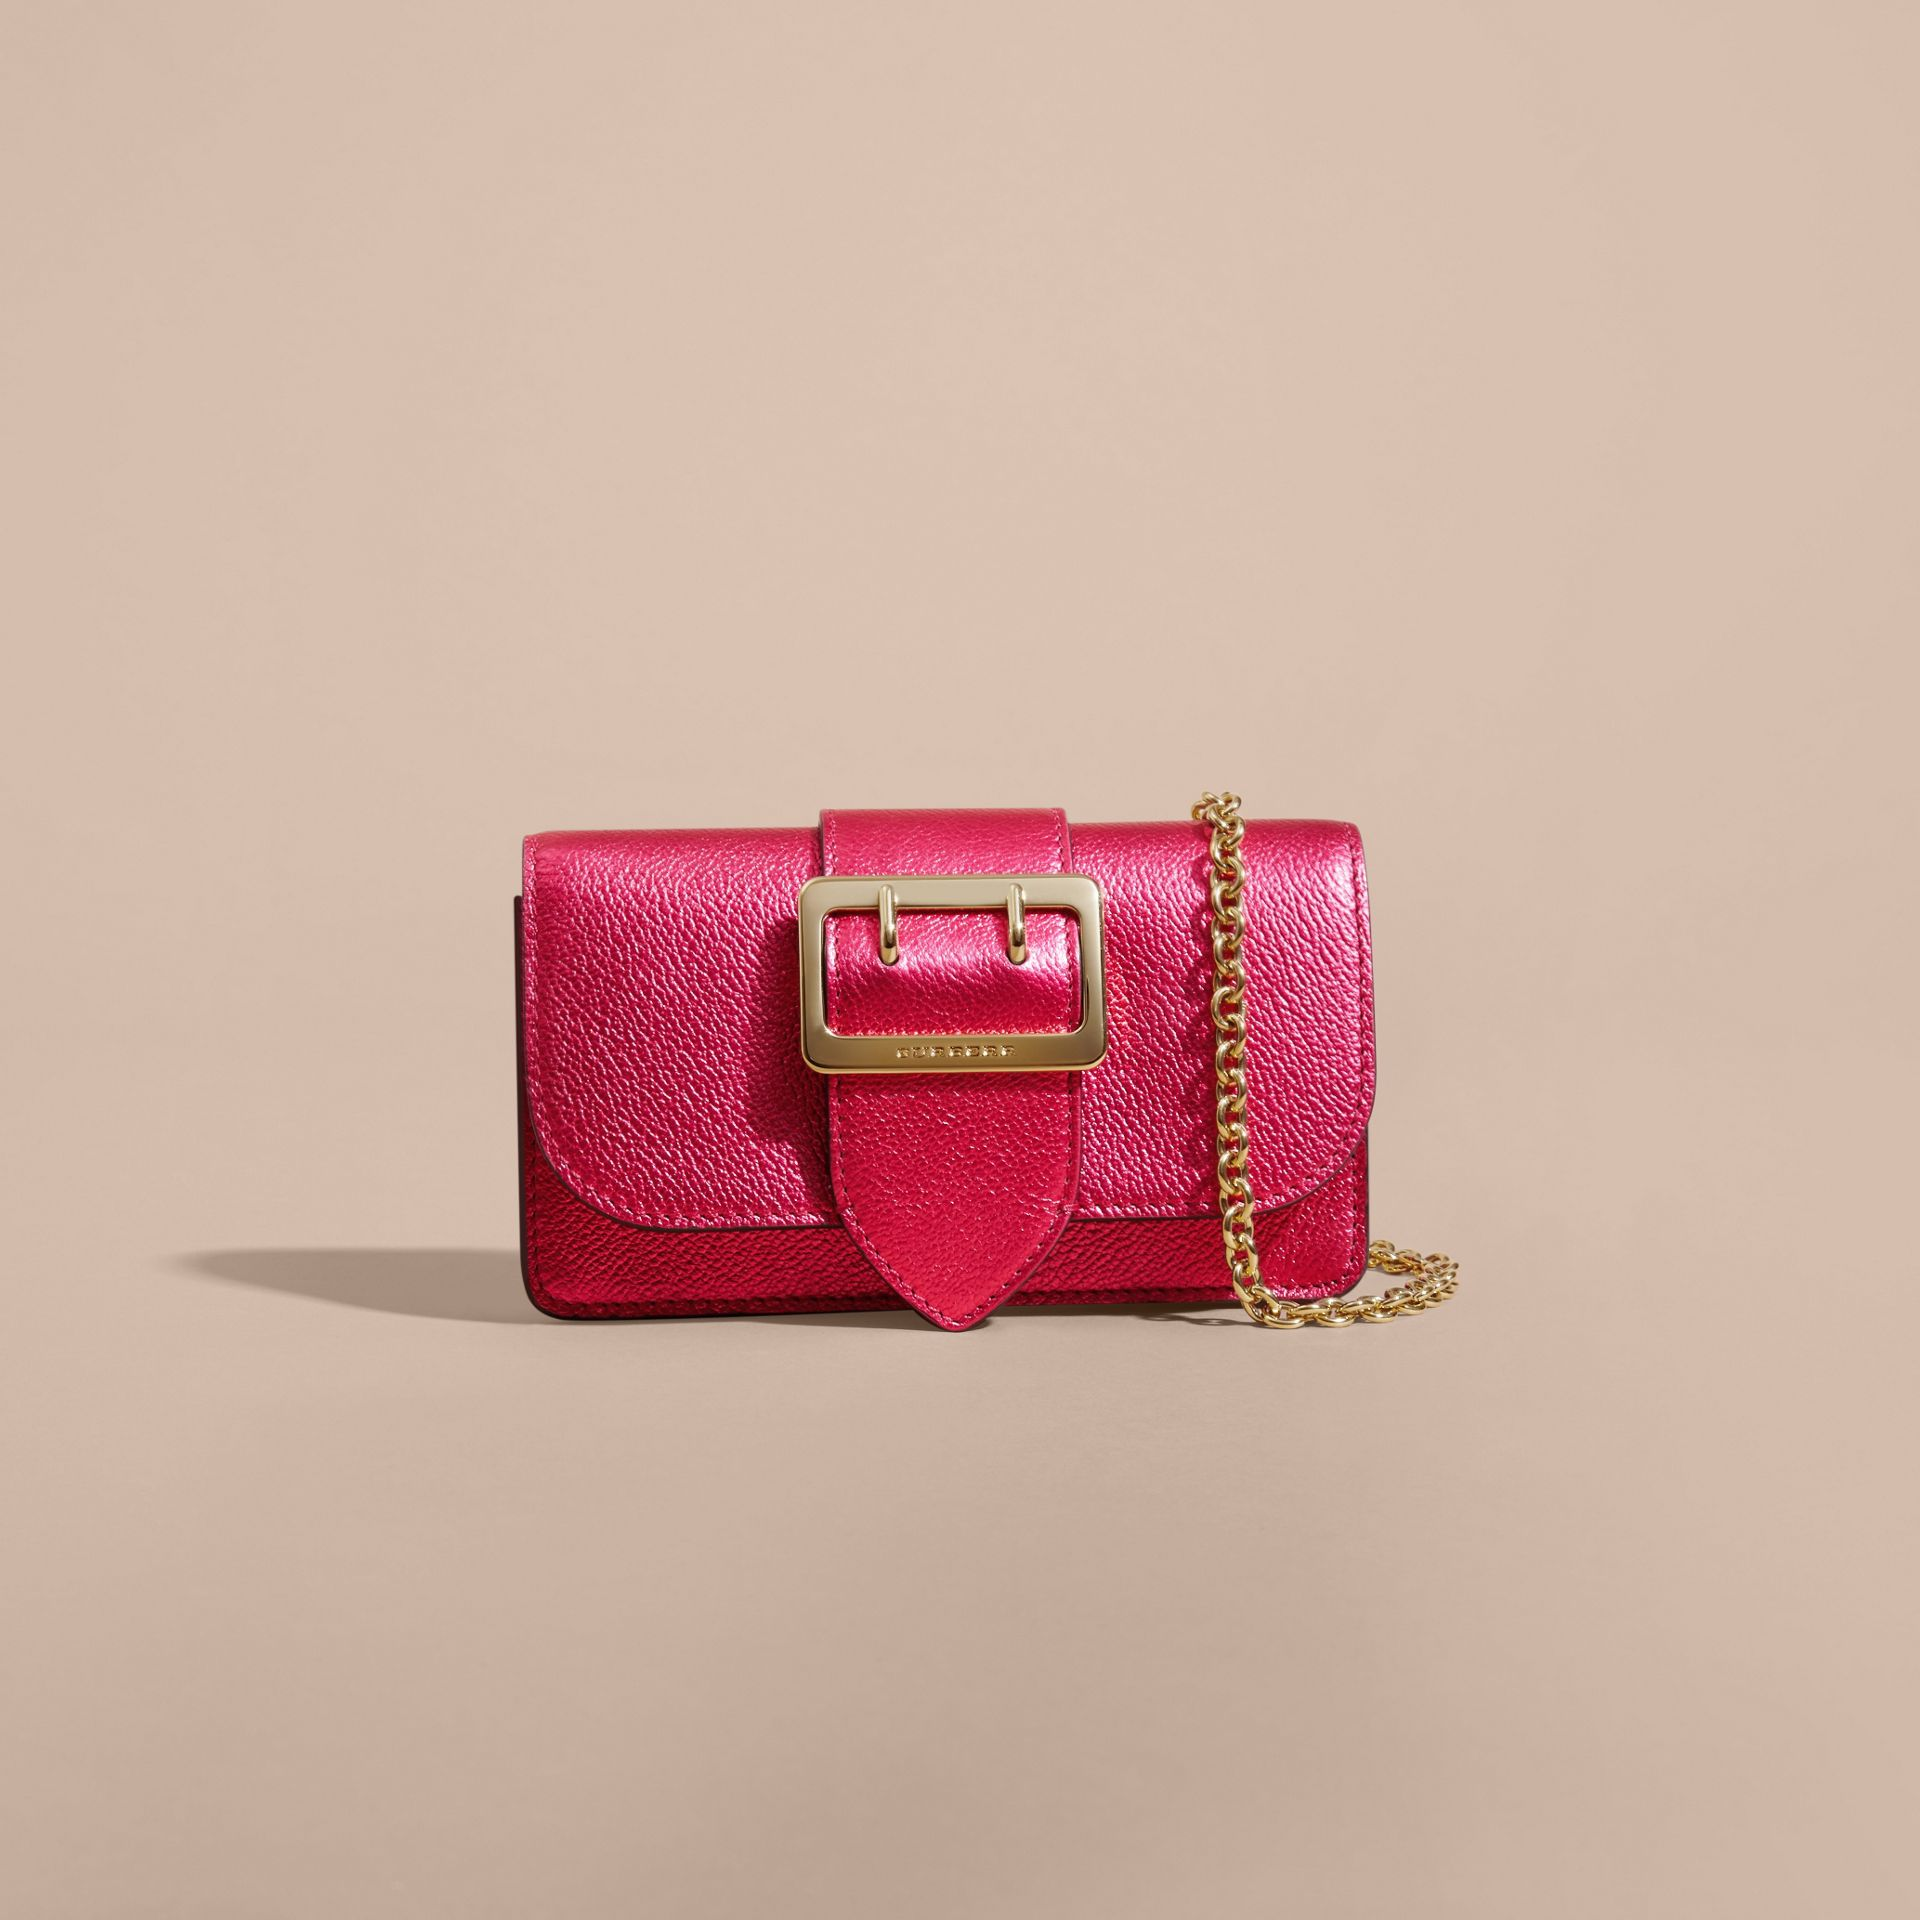 The Mini Buckle Bag in Metallic Grainy Leather in Bright Pink - gallery image 9